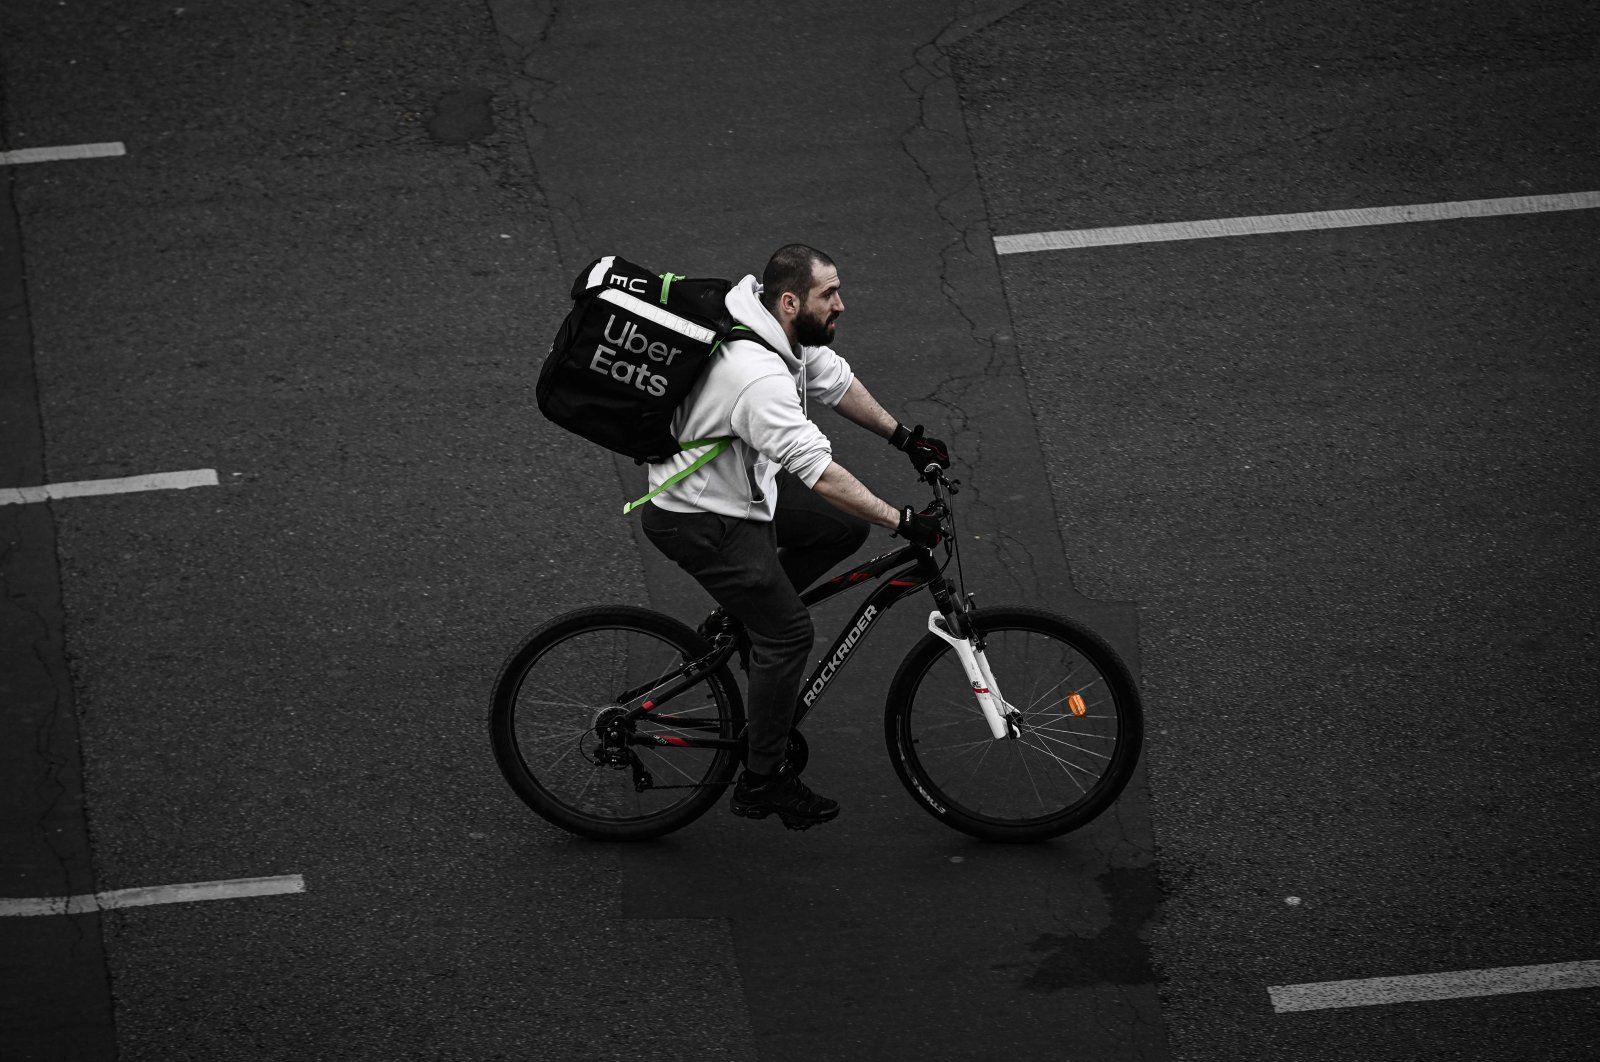 A delivery man working for Uber Eats rides a bicycle in Paris amid the coronavirus outbreak, April 20, 2020. (AFP Photo)